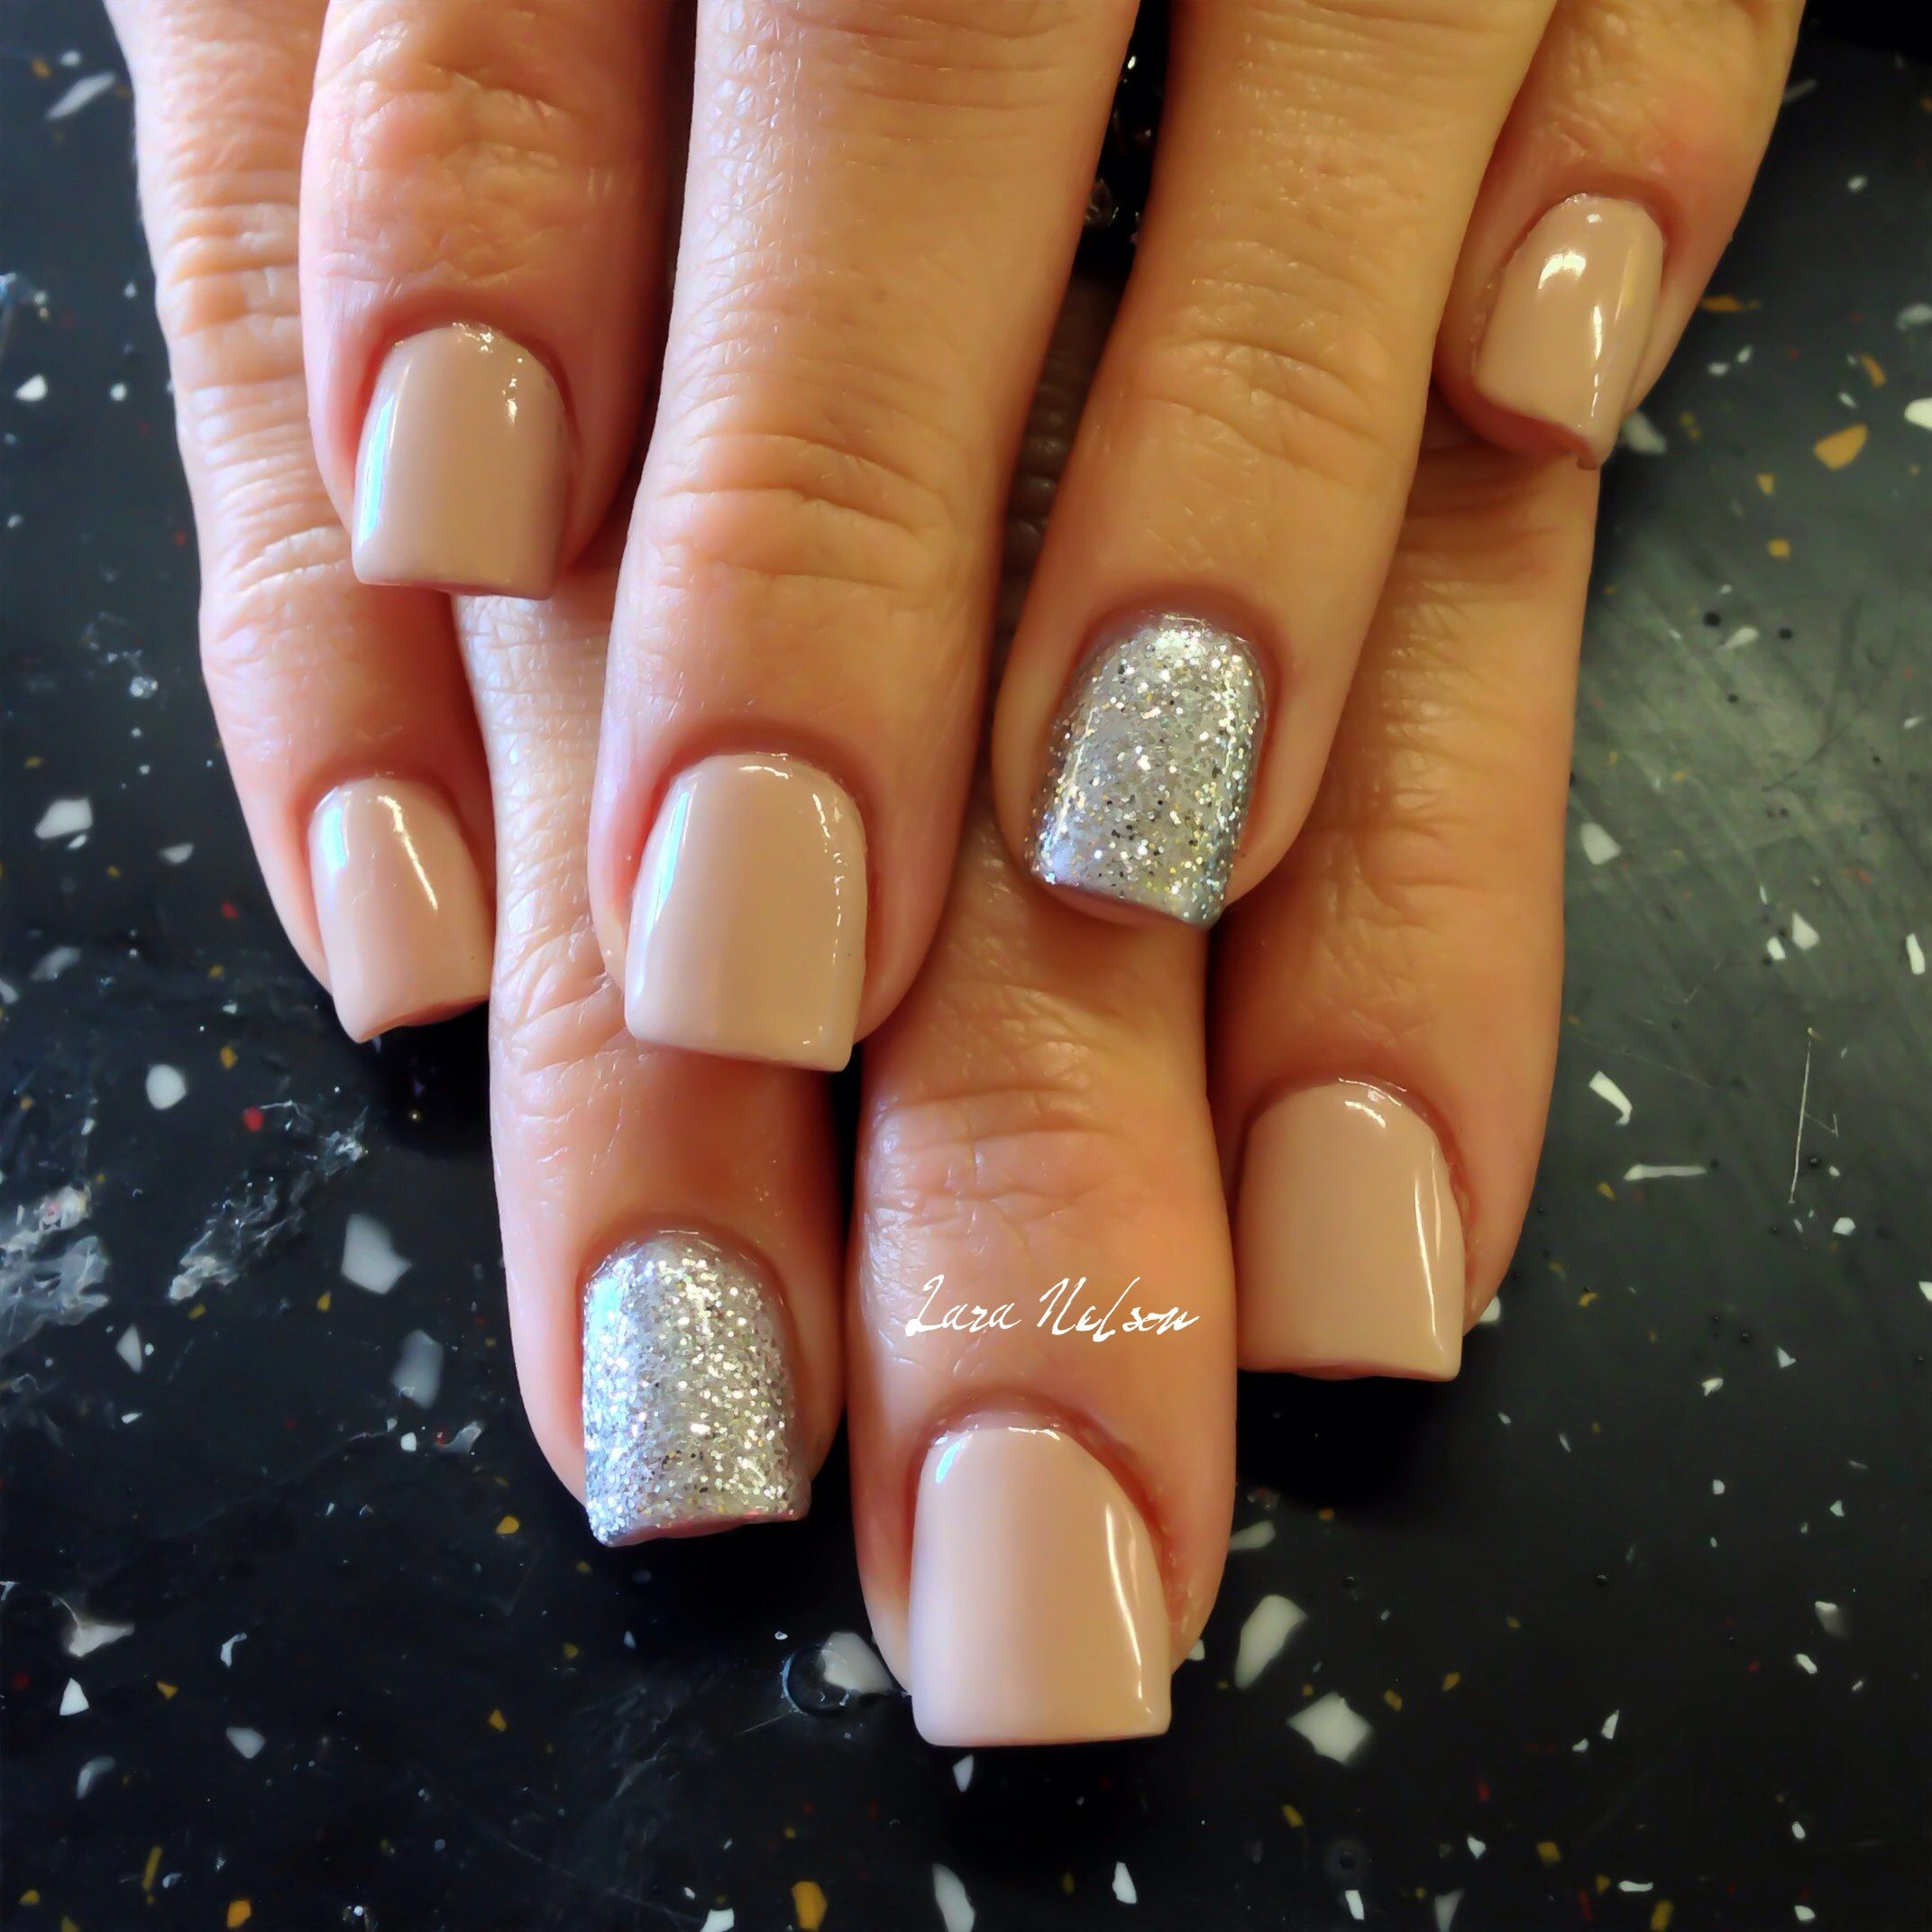 Nails by lara nelson glitter in the nude nail art makeup nails pinterest nude nails - Nail art nude ...